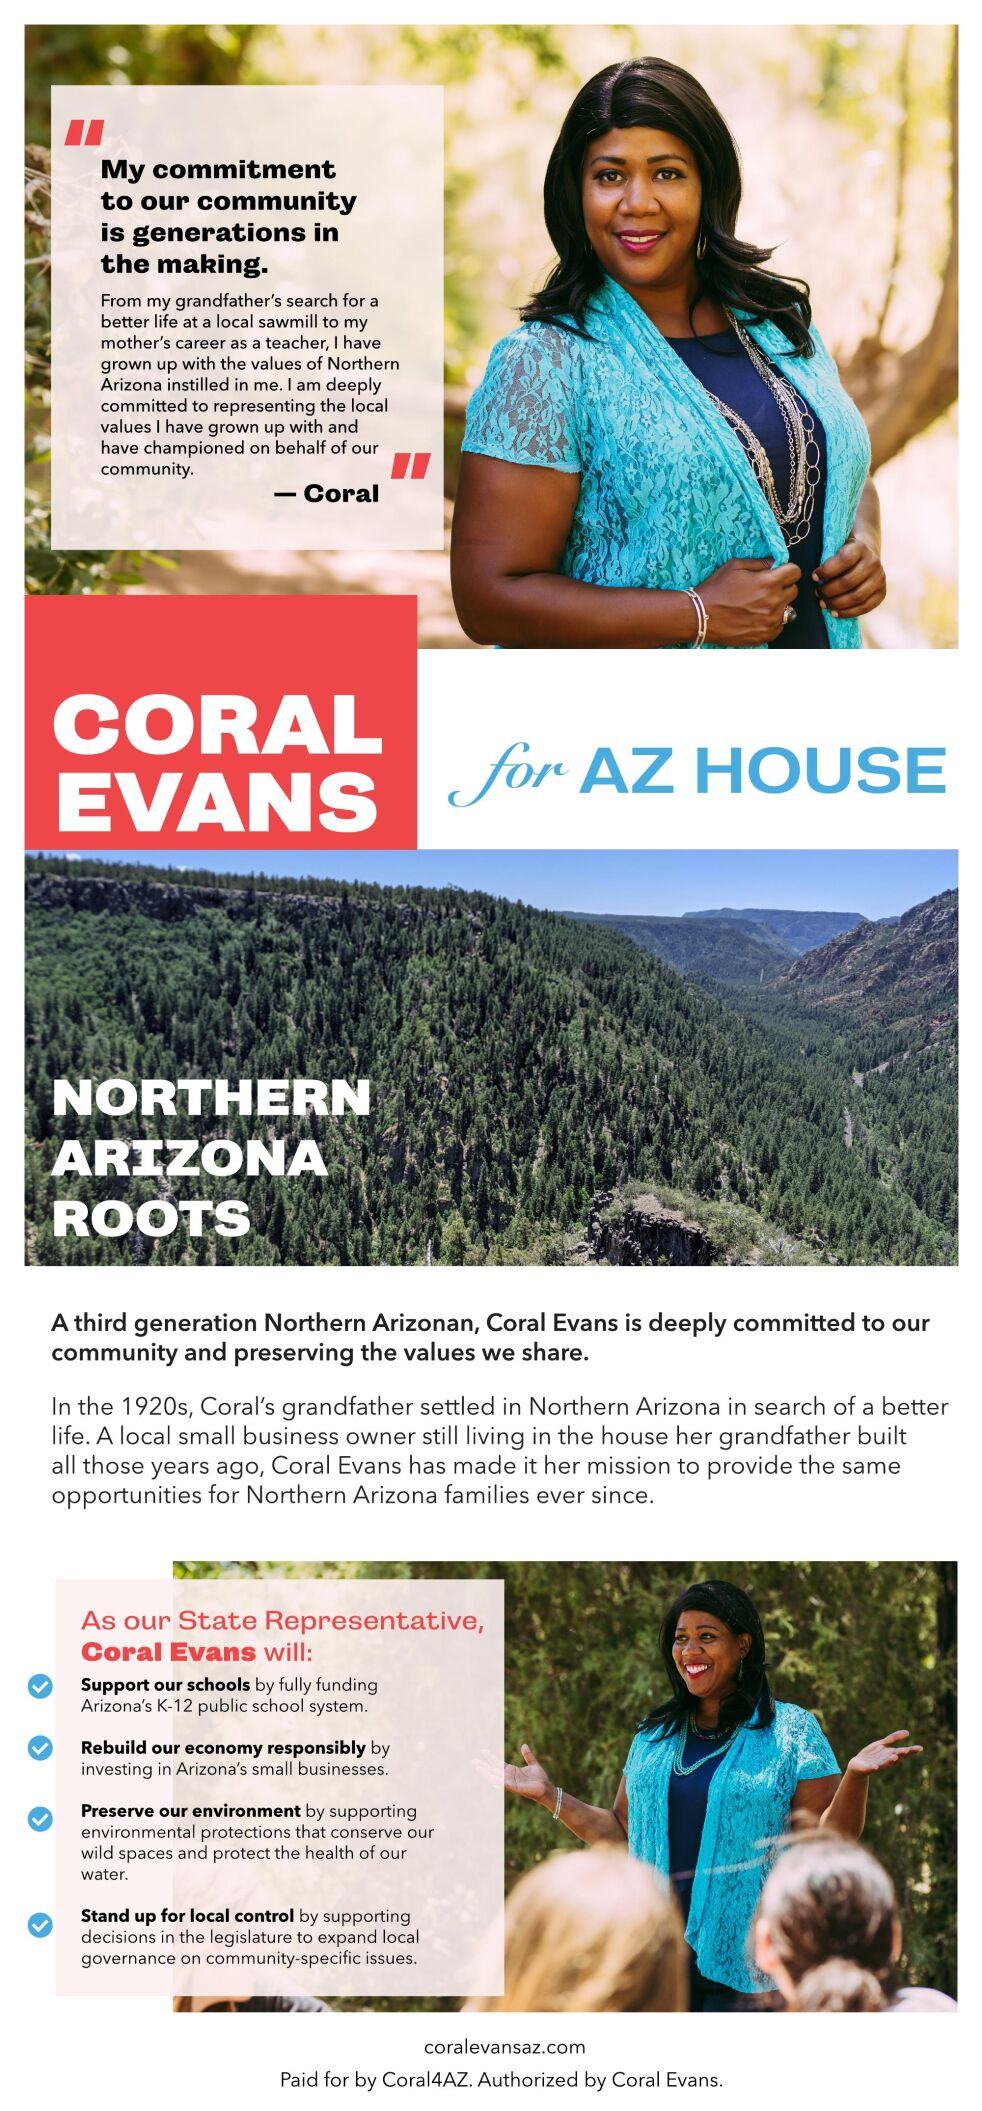 Coral Evans for AZ House